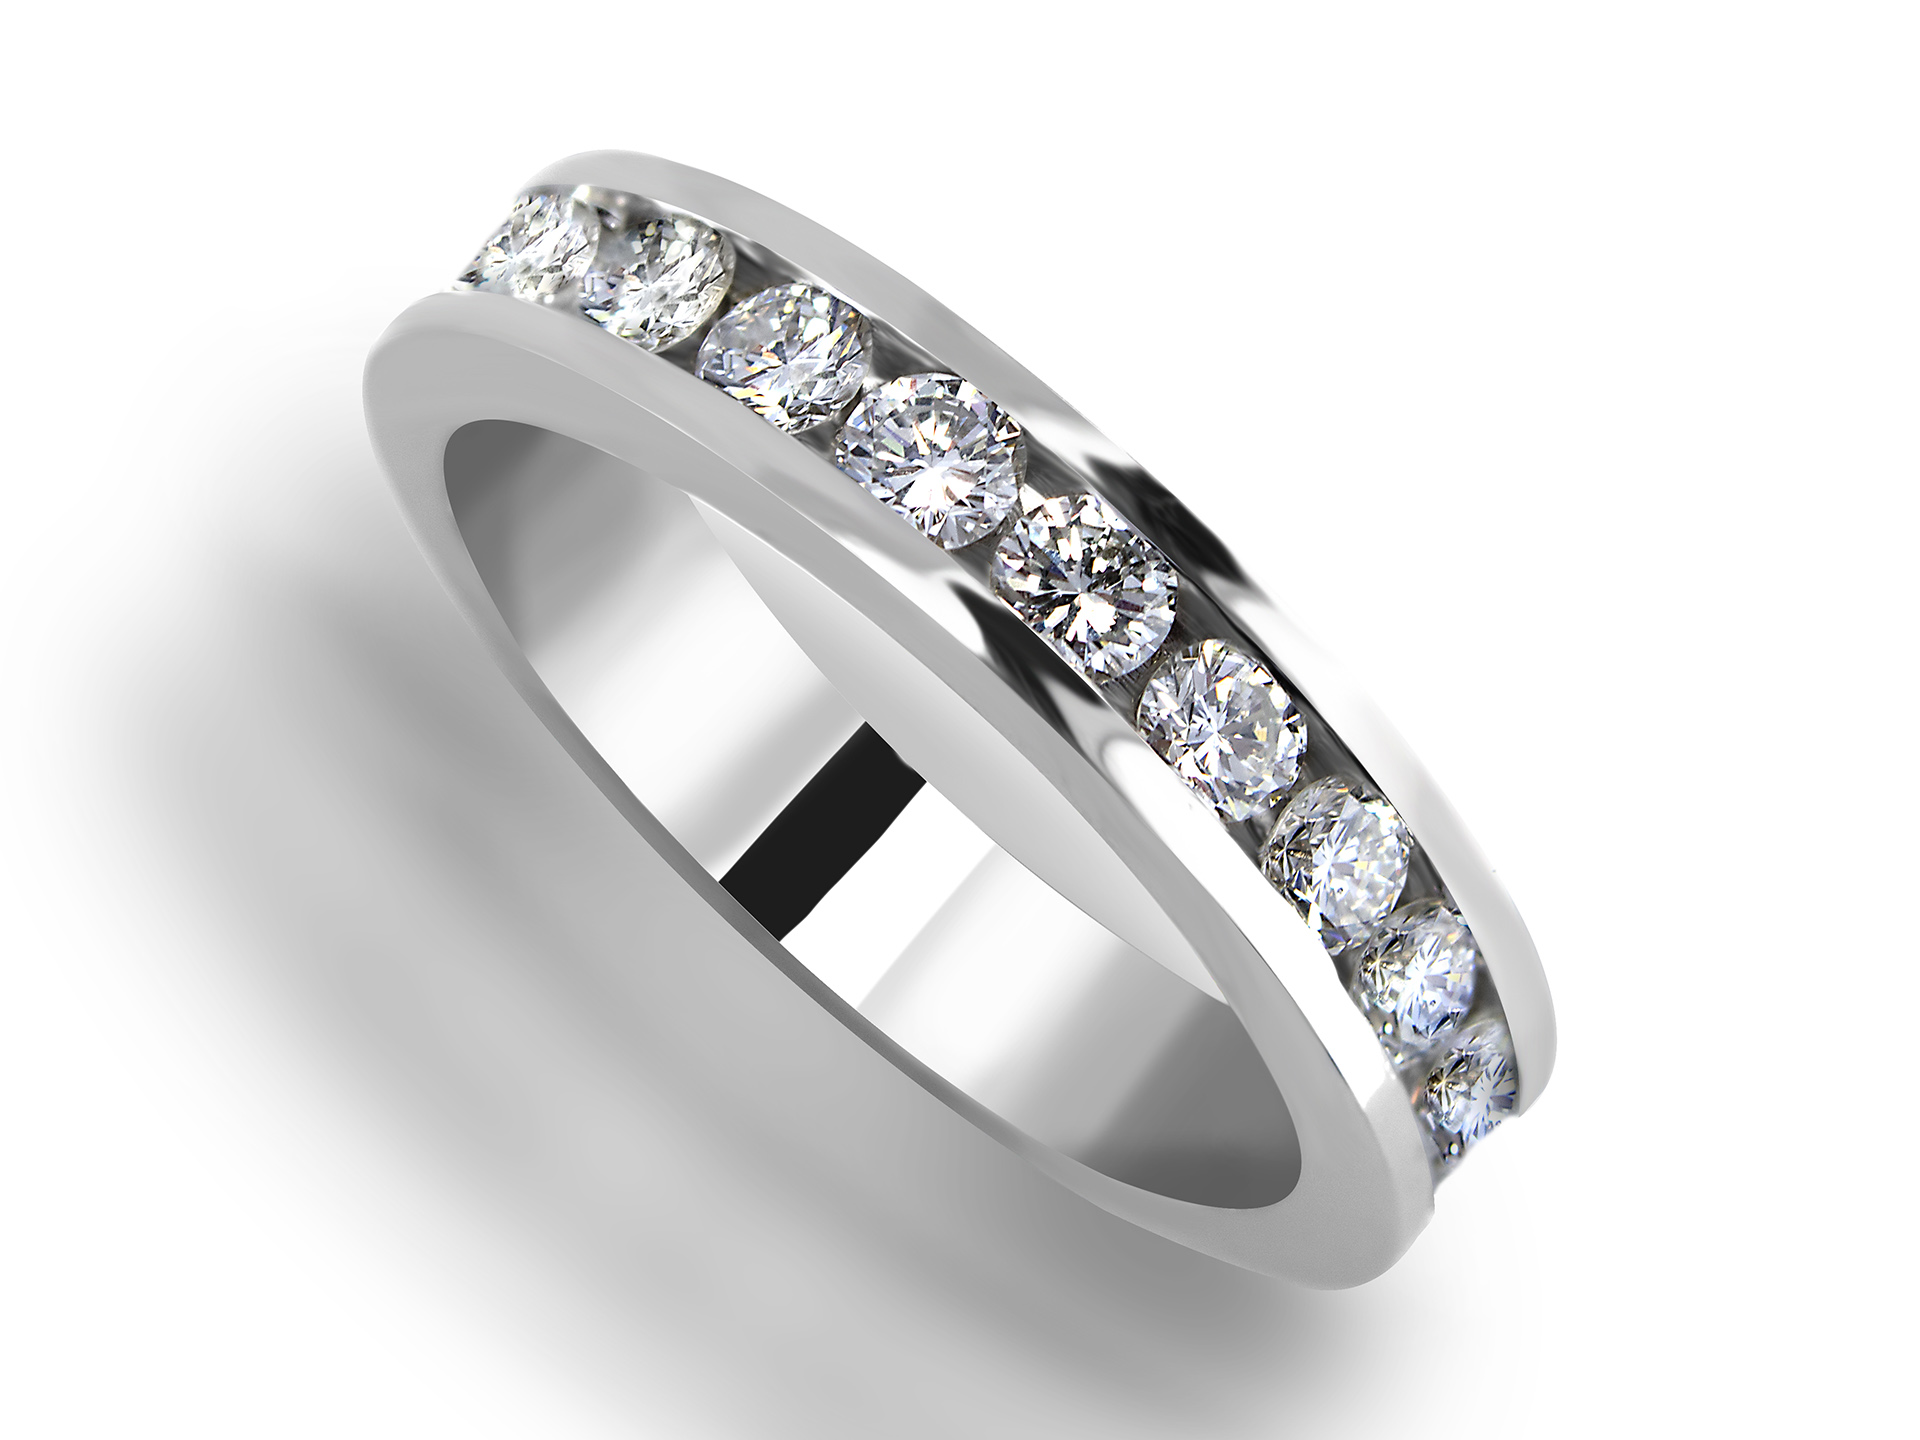 set ring stunning blog shown wedding diamond rings round the en above solitaire a cut choice brilliant setting engagement channel